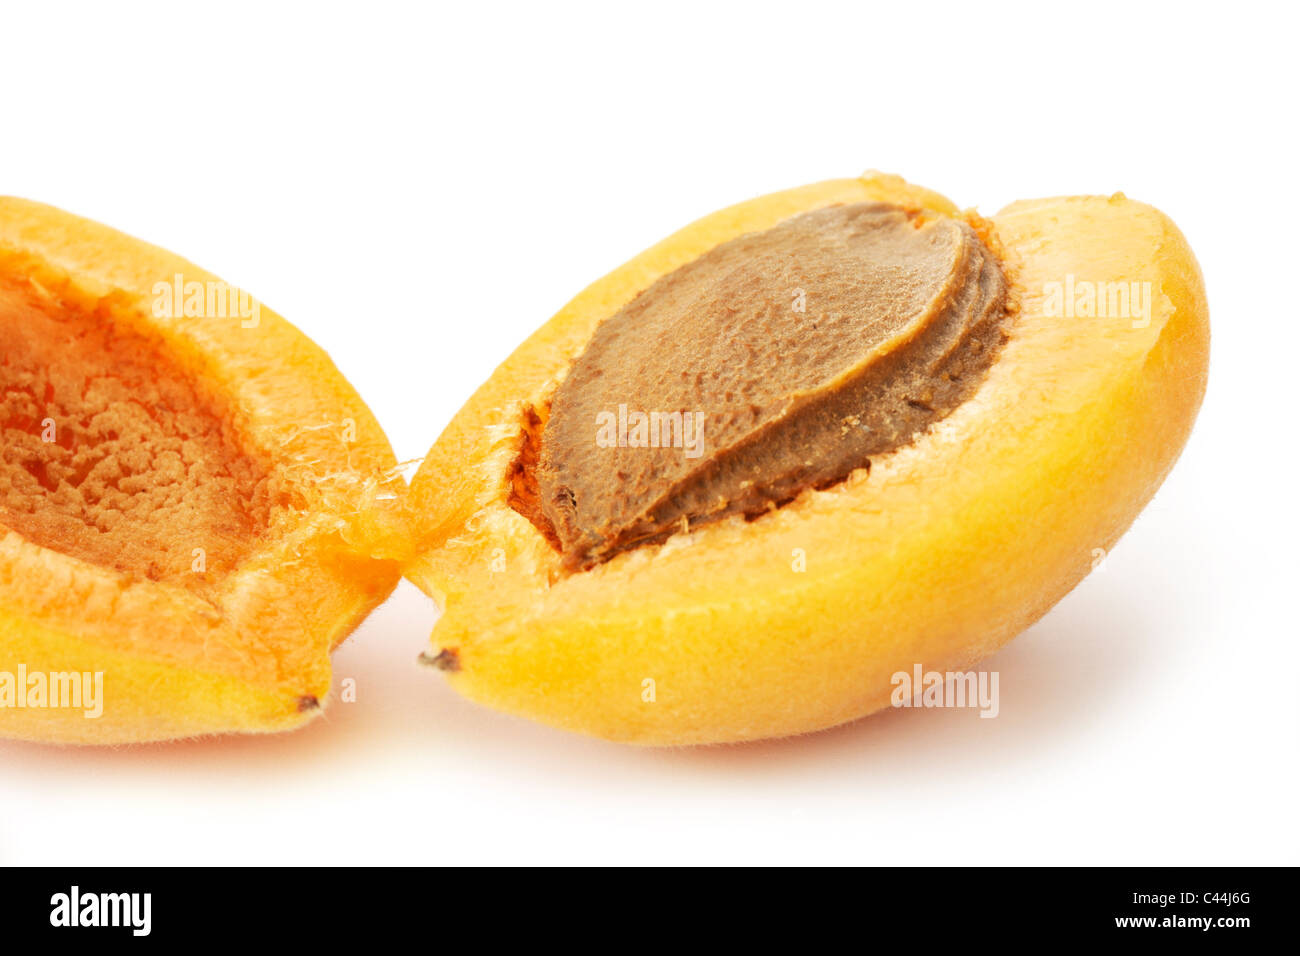 Halved Apricot. Professionally retouched high quality image. - Stock Image